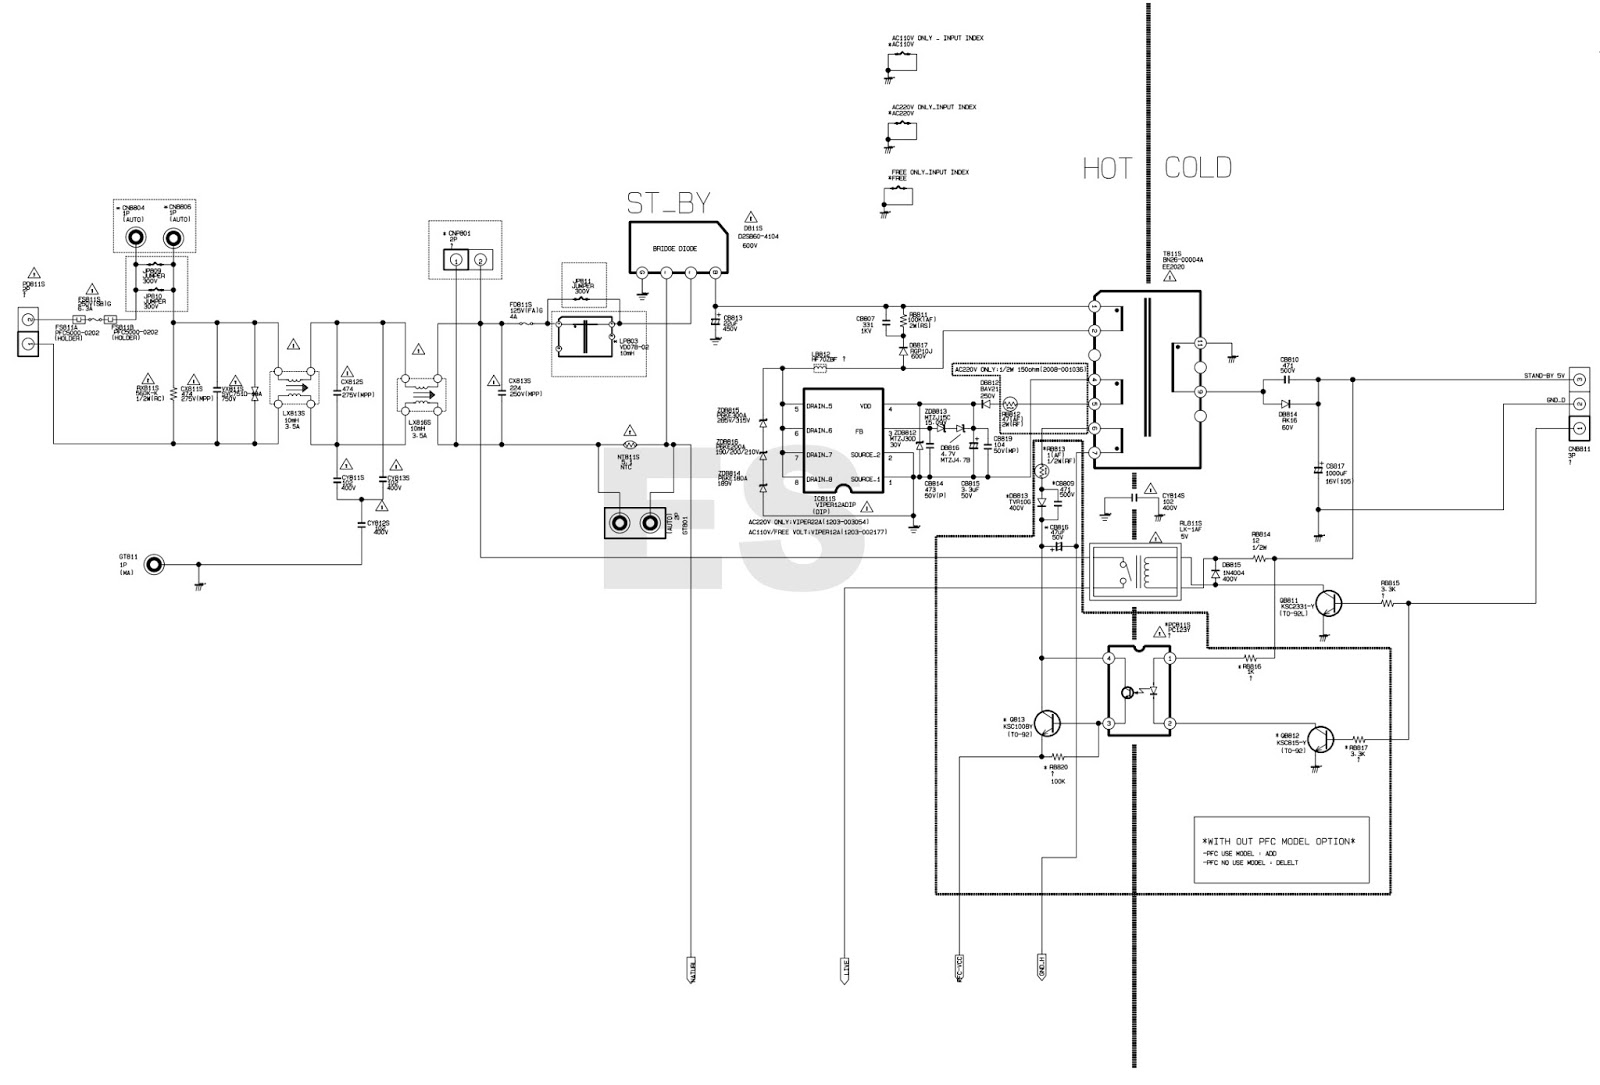 firmware download  samsung bn44-00622b power supply board schematic diagram - viper12a